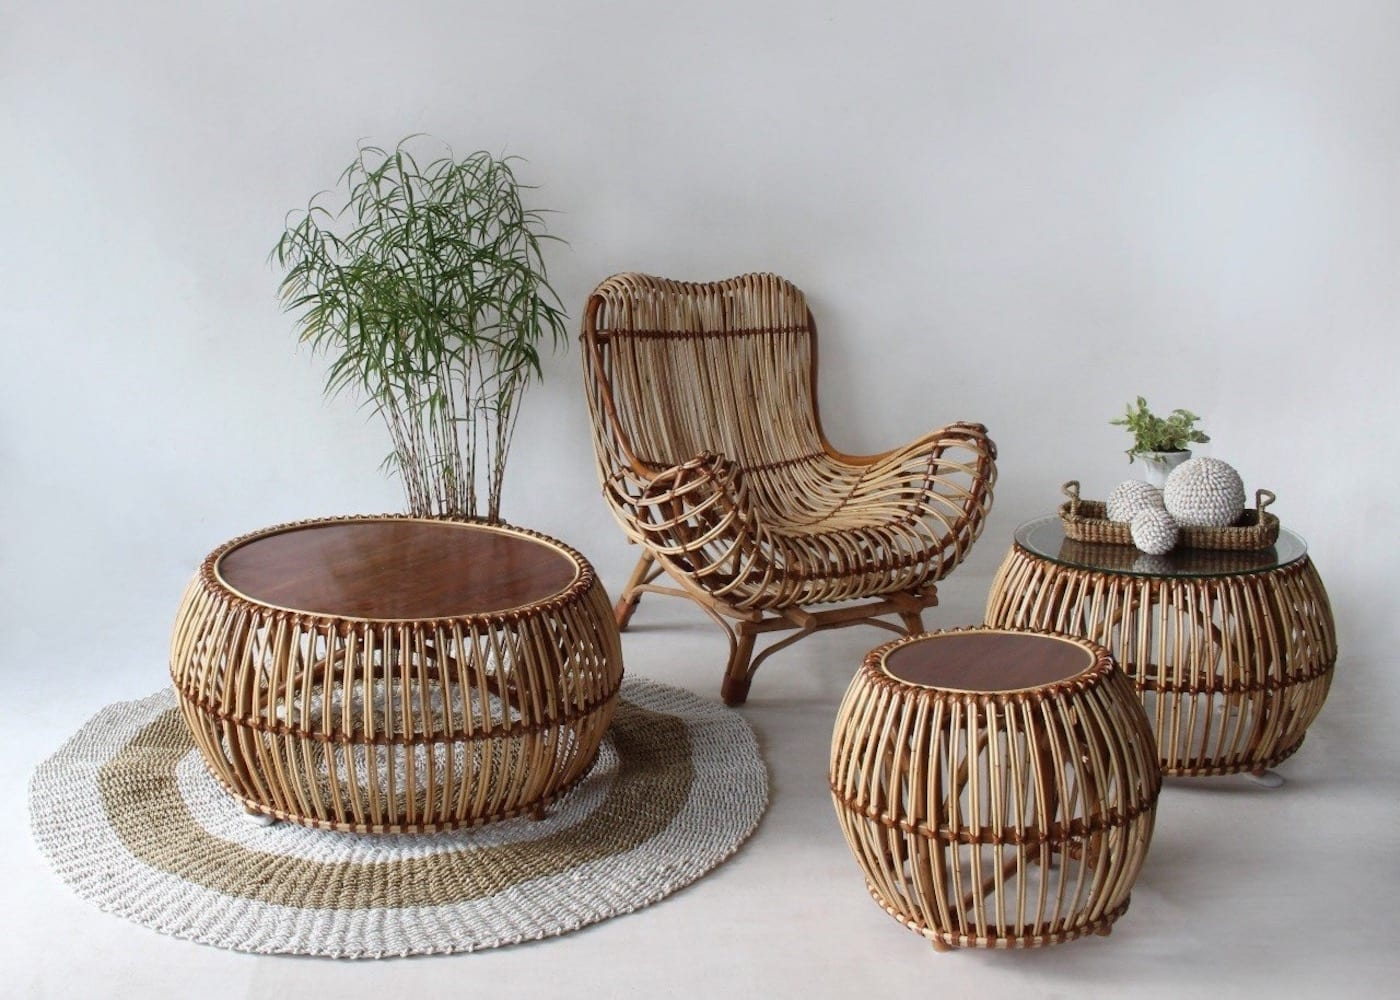 Furniture Shopping in Bali  Where to buy home decor  Honeycombers